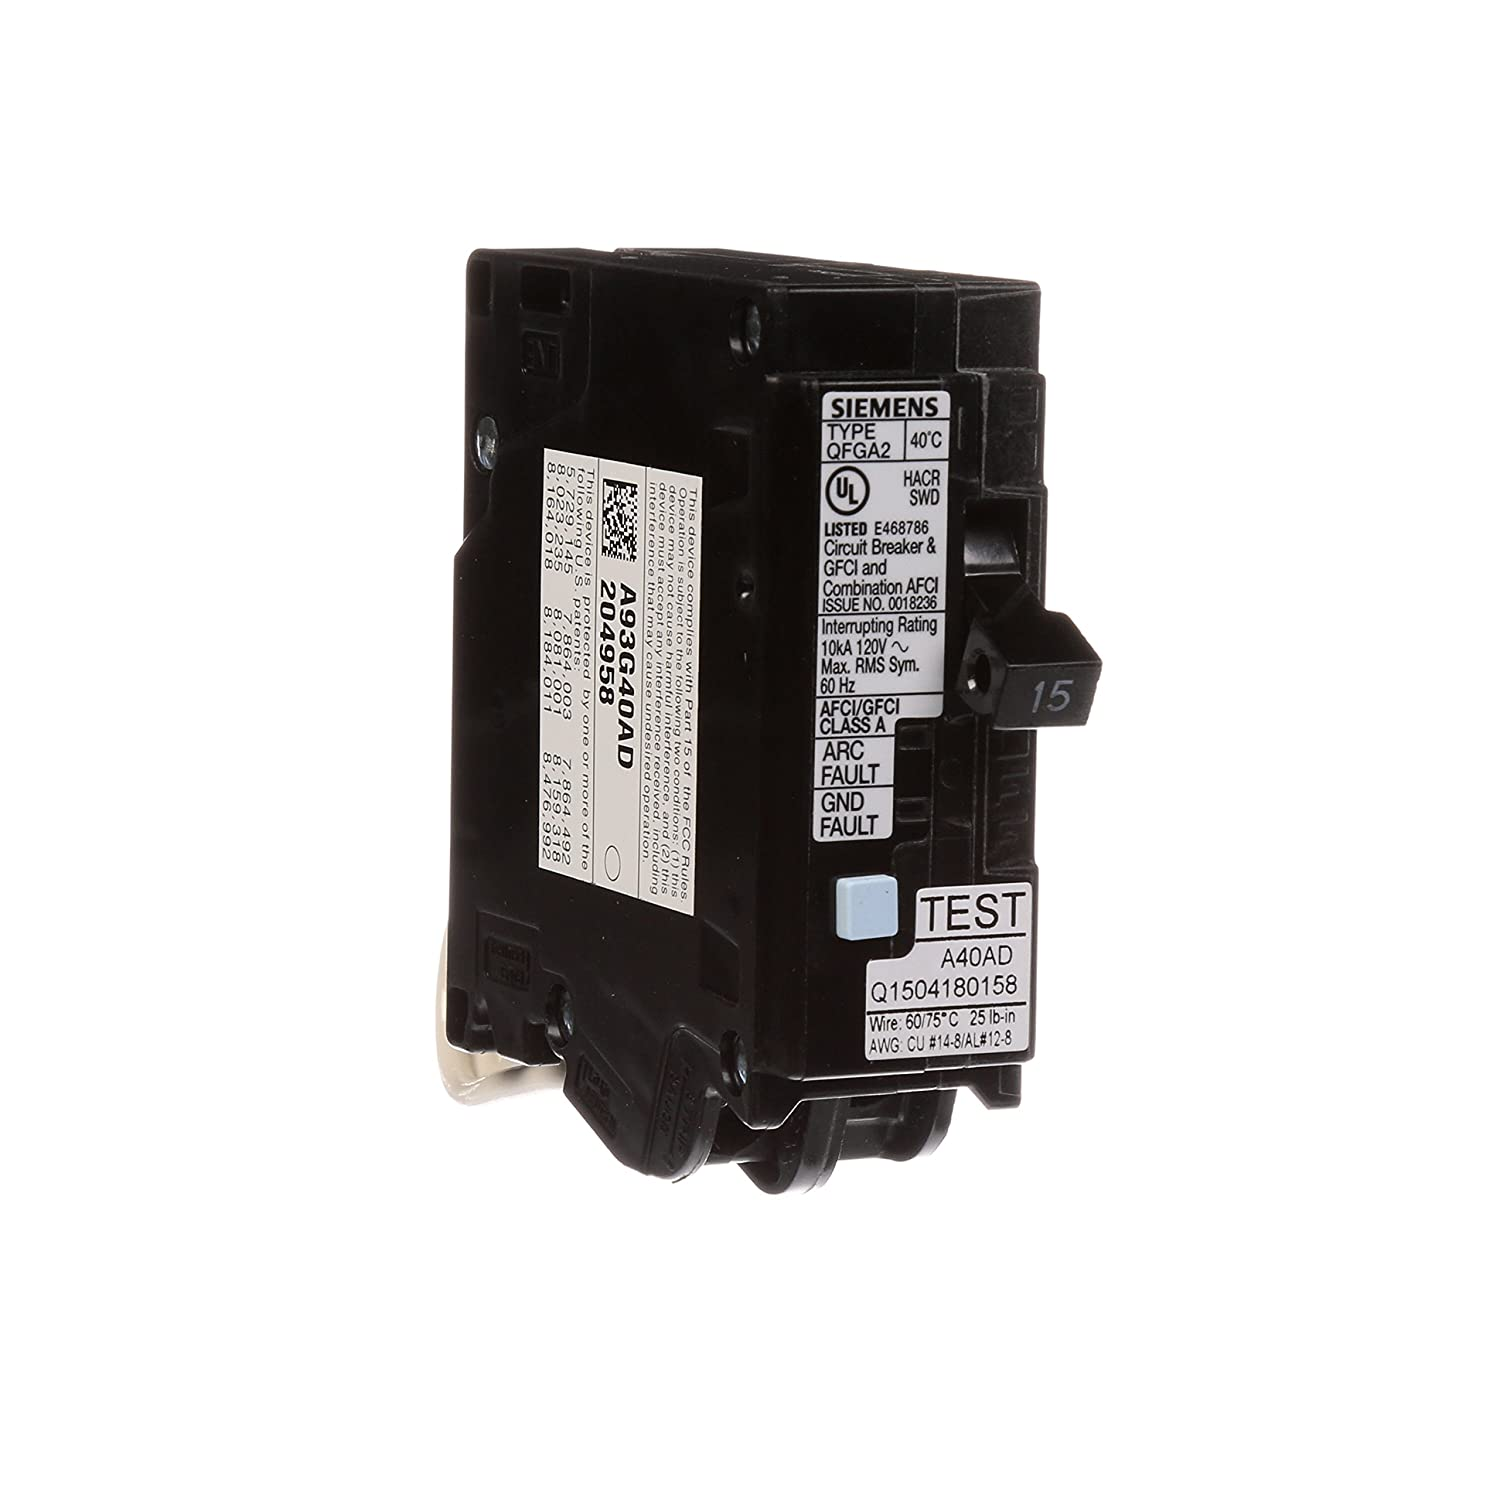 Siemens Q115df 15 Amp Afci Gfci Dual Function Circuit Breaker Plug Wiring Diagram For Dummy S On Load Center Style